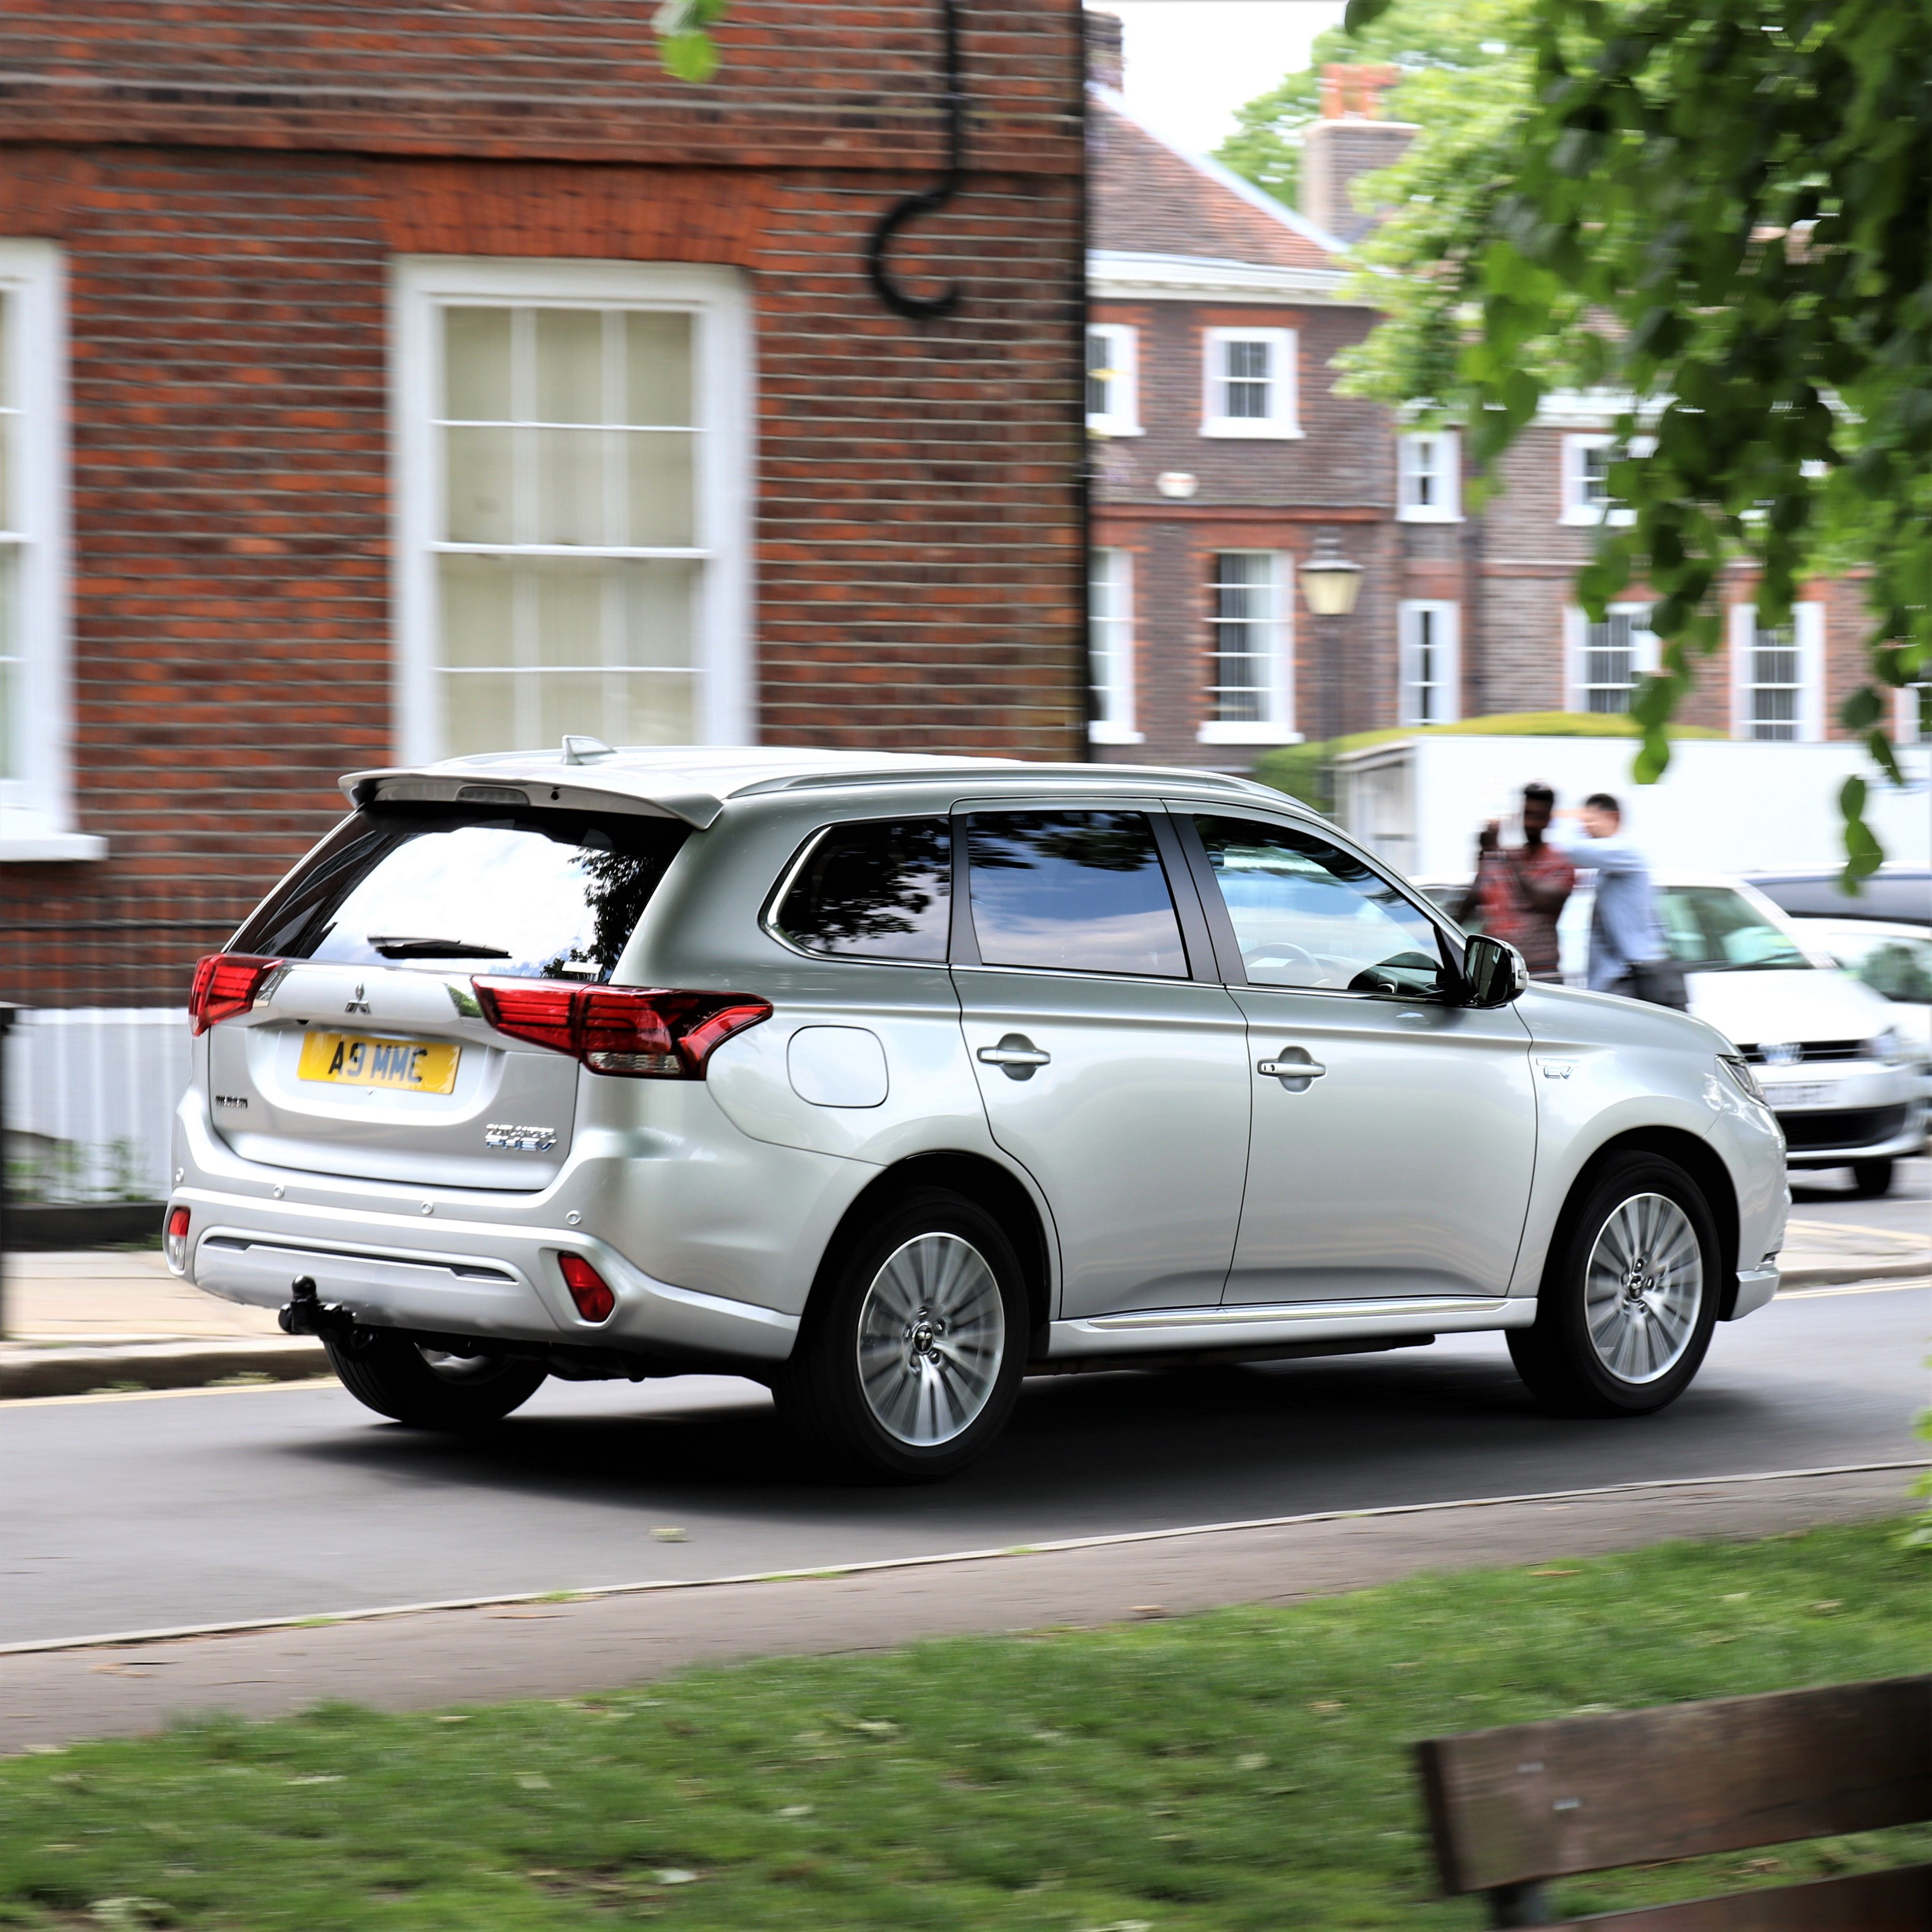 Phevmythbuster 90 Of Outlander Phevs Are Charged Regularly And 97 Are Charged At Home Independent Mitsubishi Motors Mitsubishi Mitsubishi Outlander